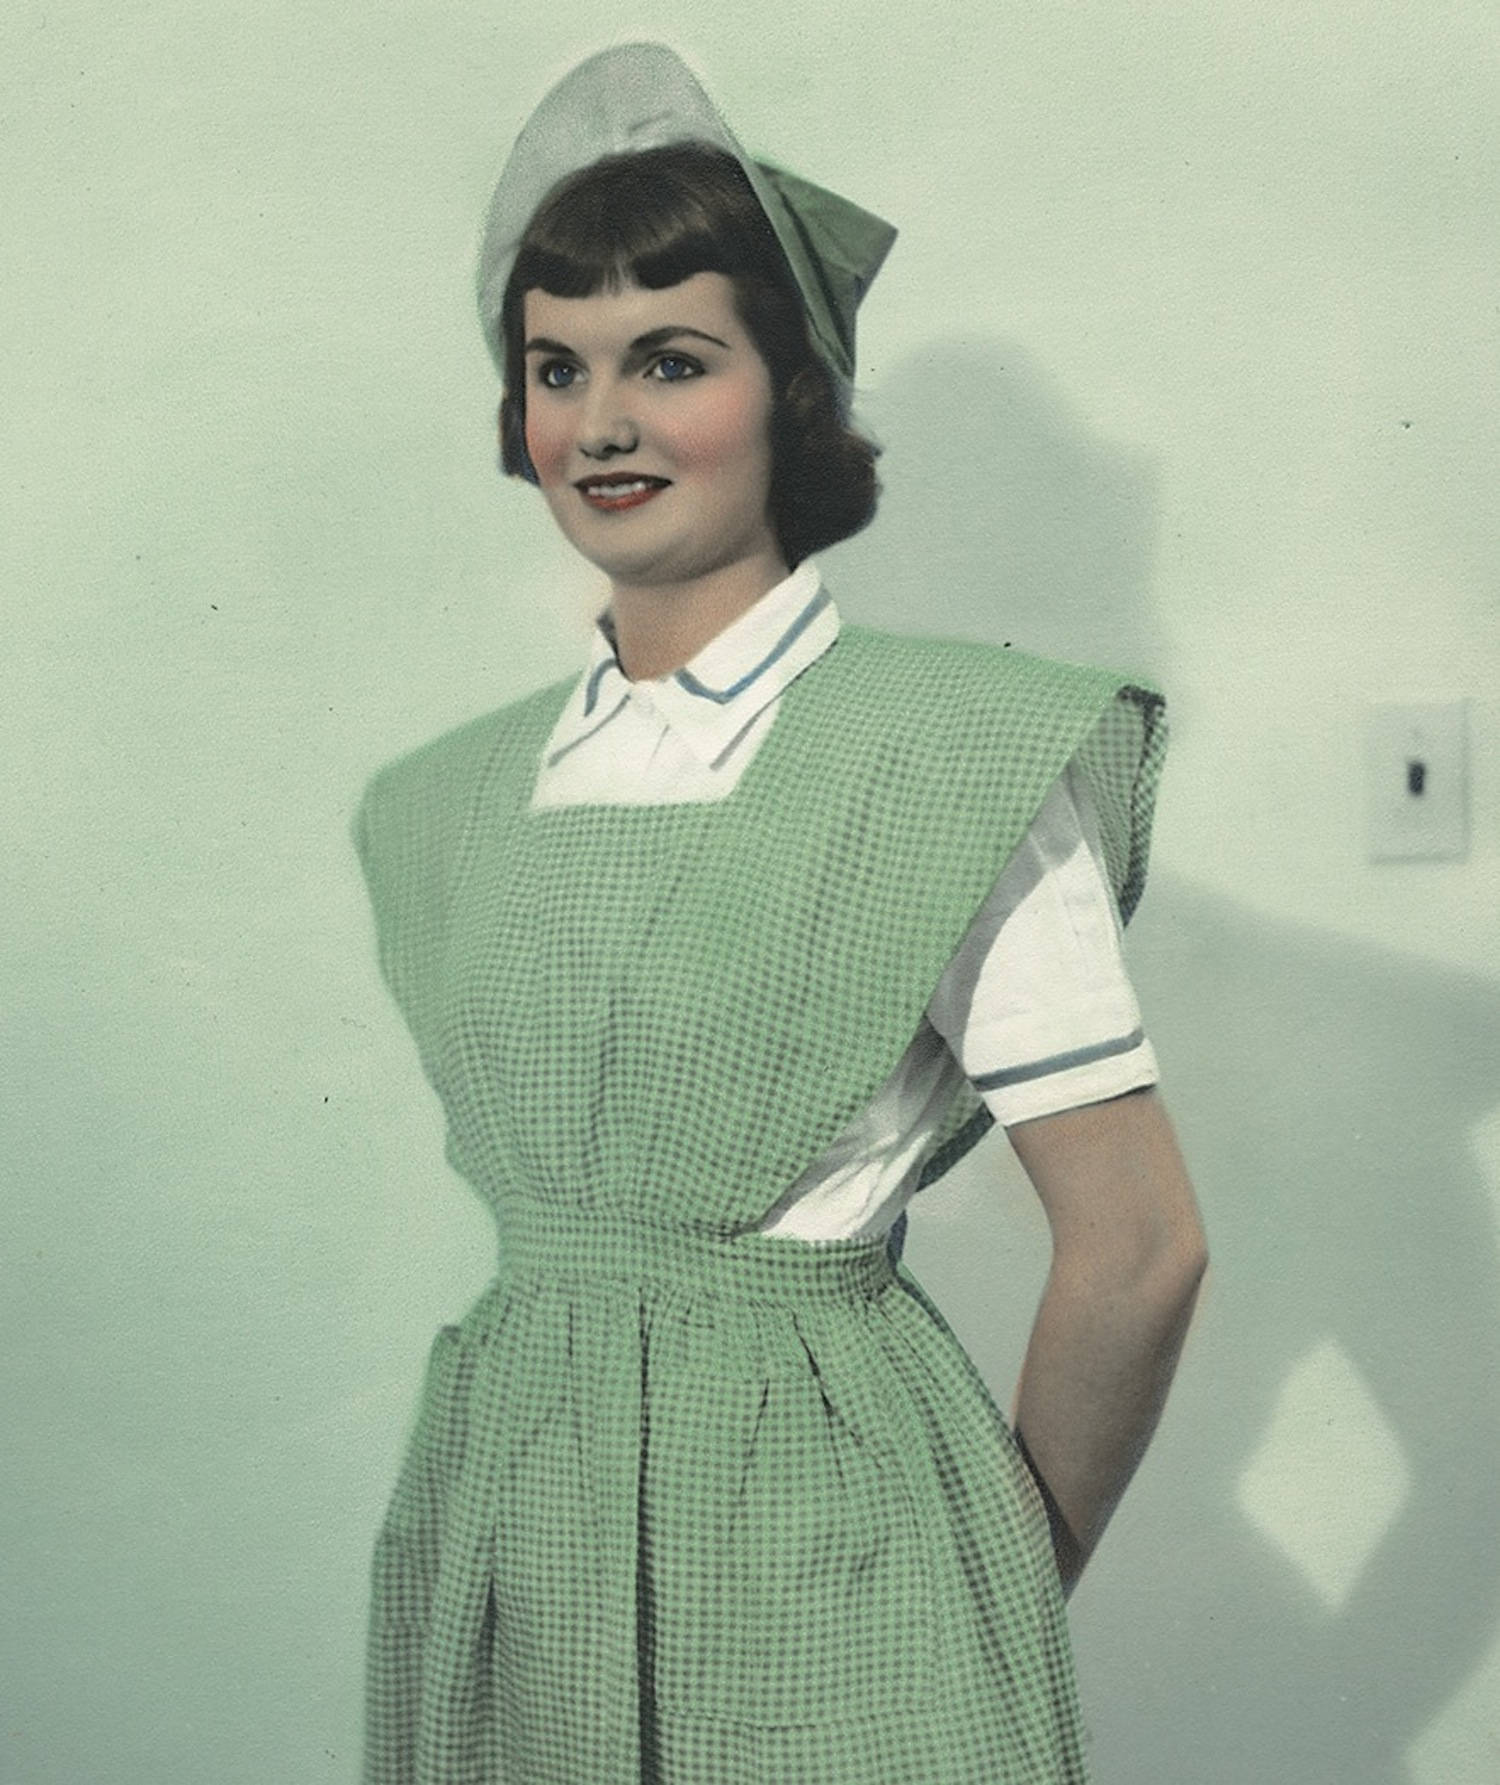 [Nurse wearing uniform from Colombia]